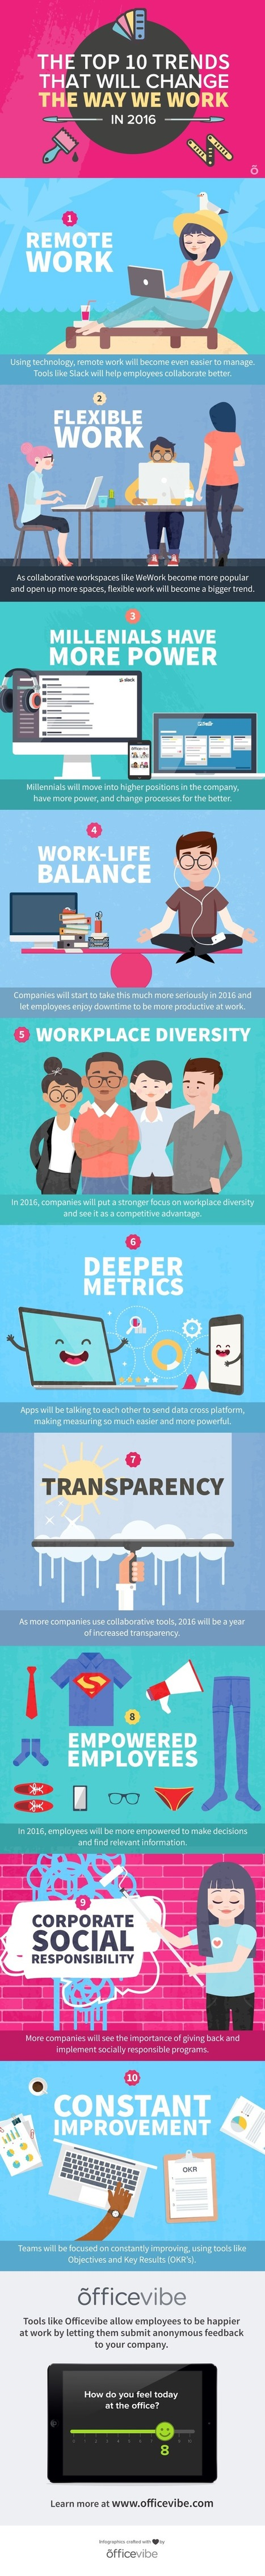 The Top 10 Trends That Will Change The Way We Work in 2016 (Infographic) | ssAcademic | Scoop.it